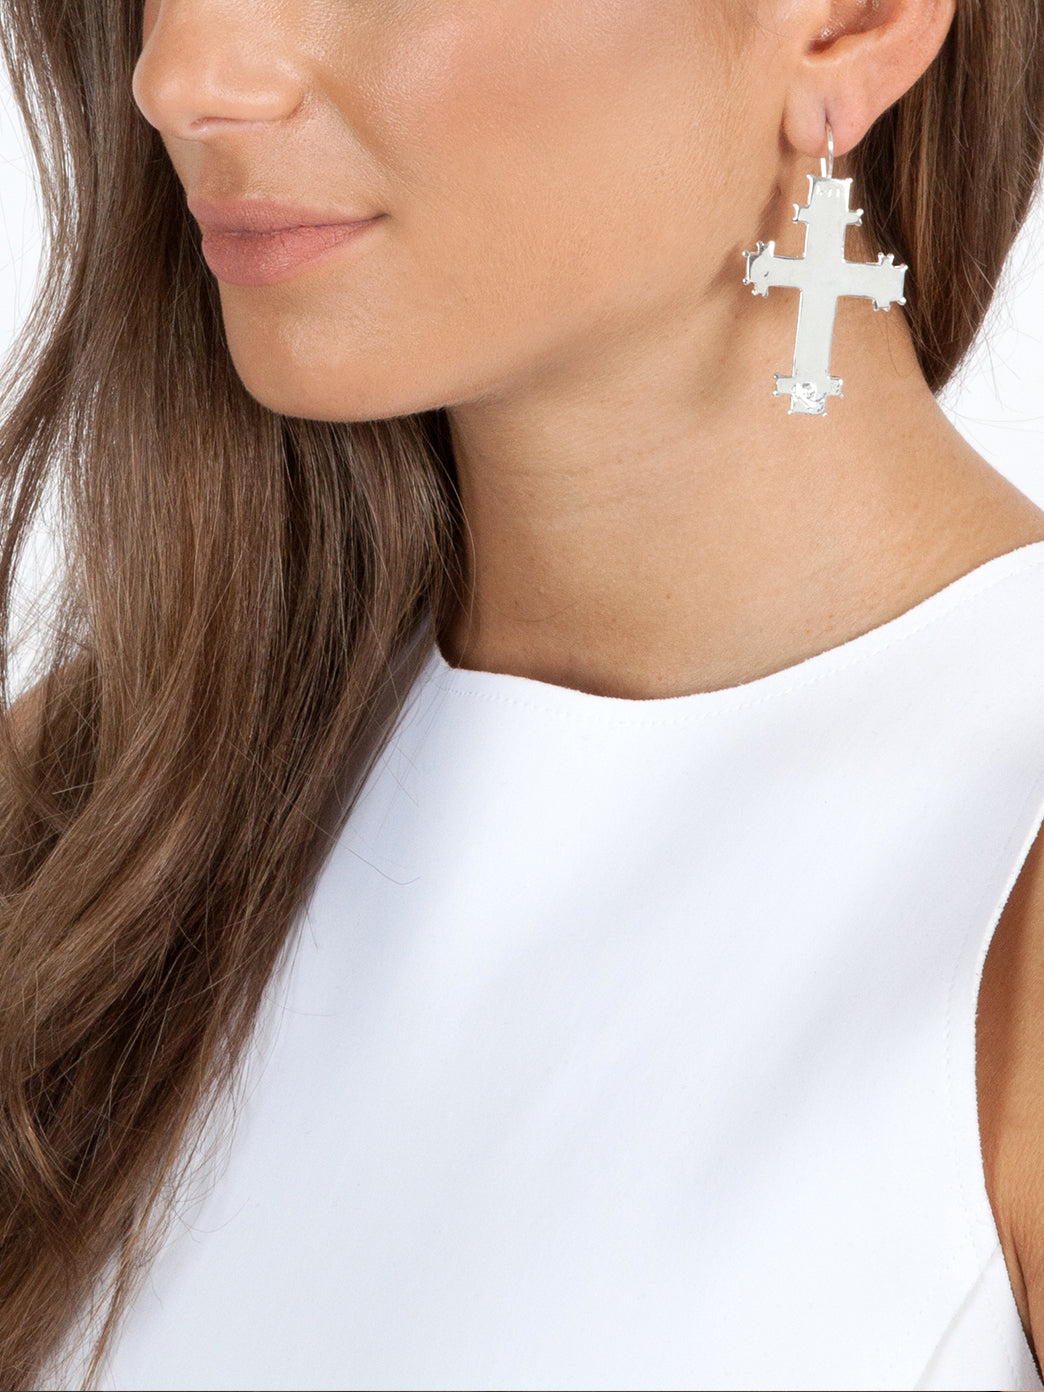 Fiorina Jewellery Byzantine Cross Earrings Model